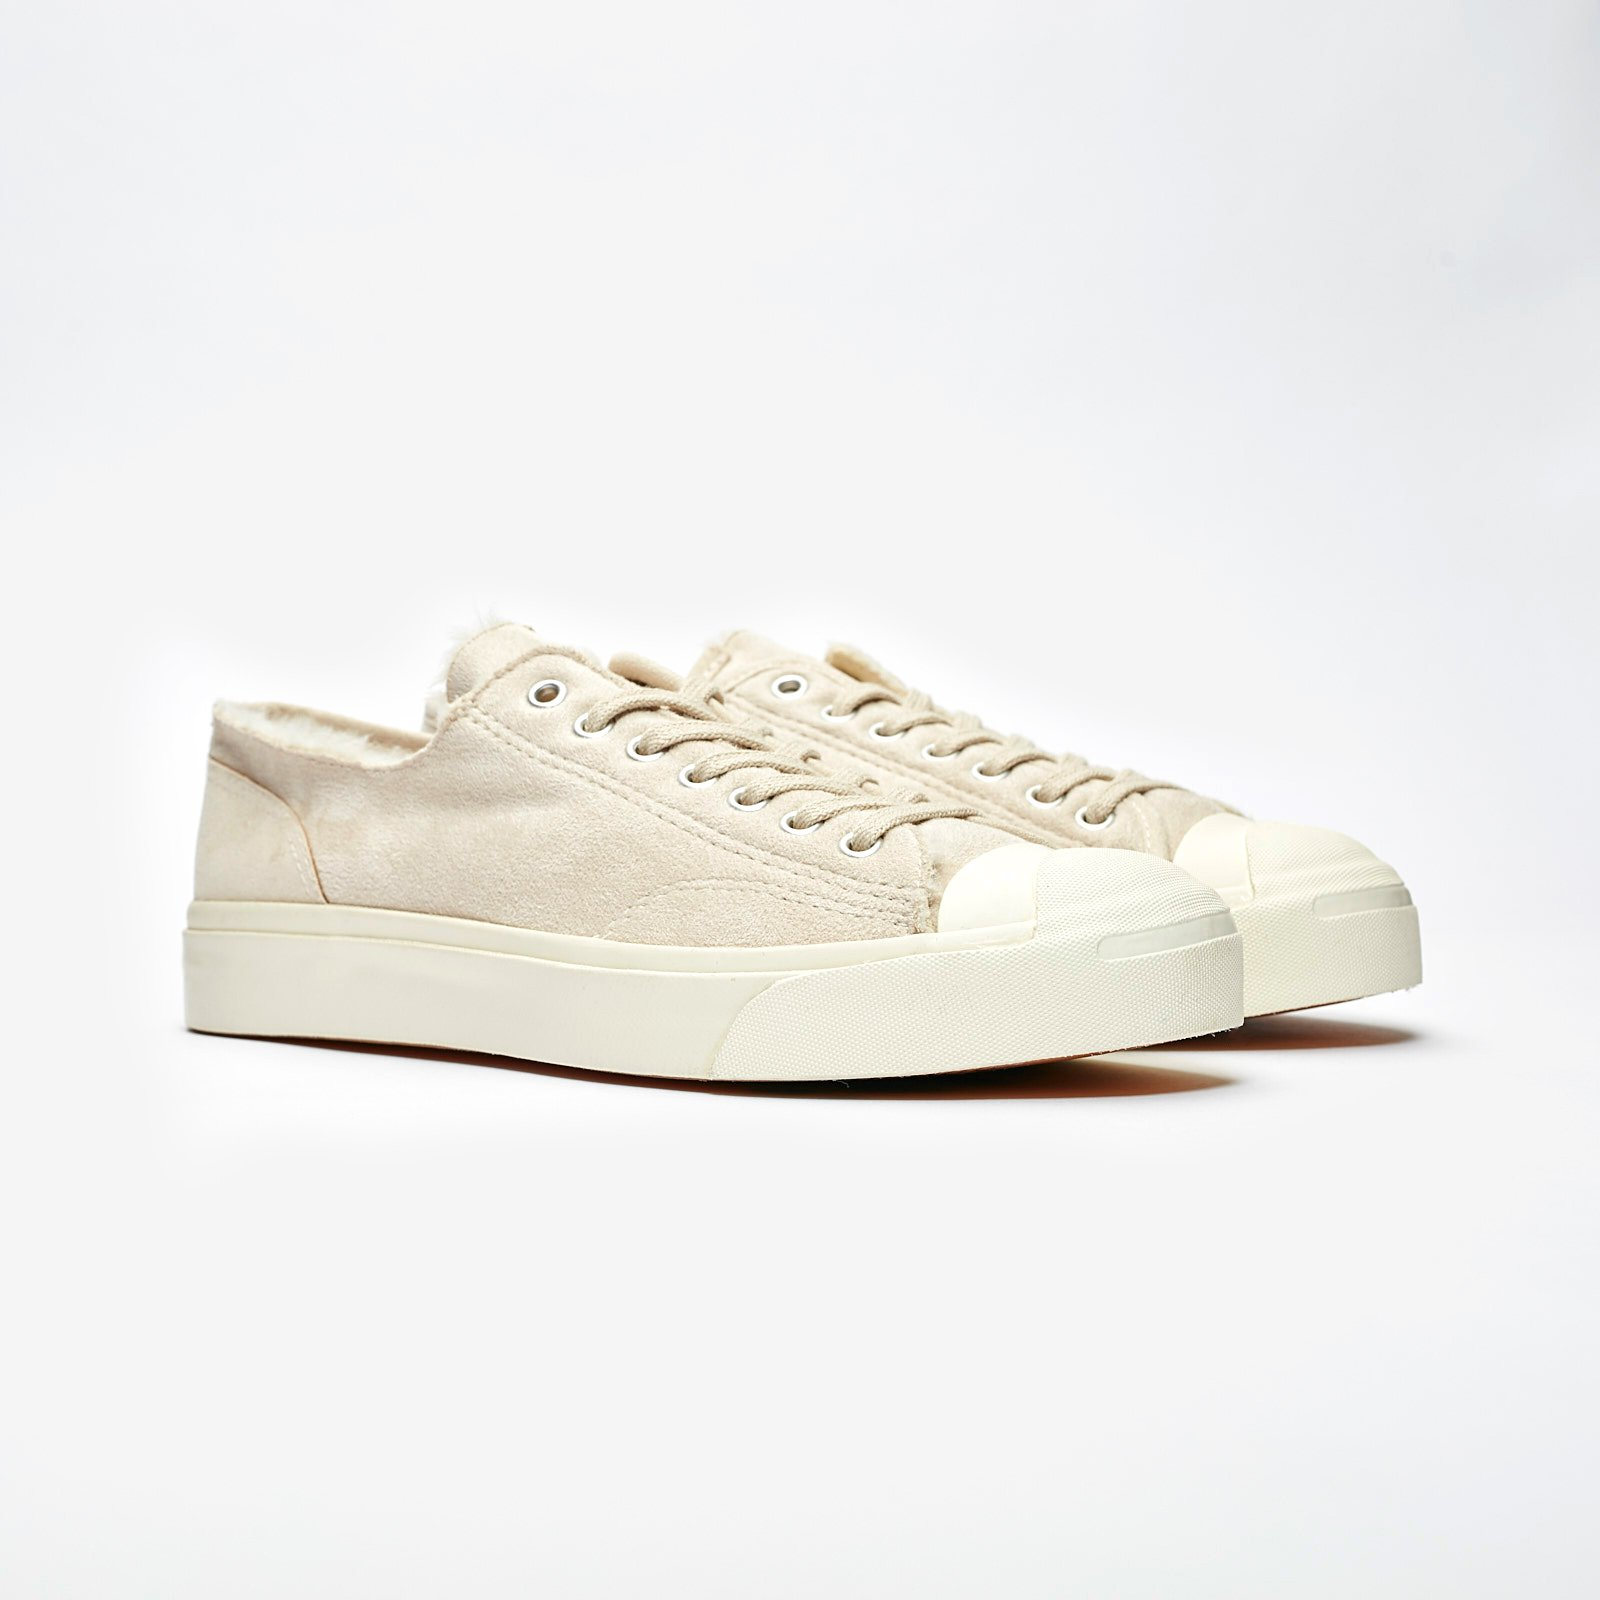 9ace2388aef8 Converse Jack Purcell x CLOT - 164534c - Sneakersnstuff